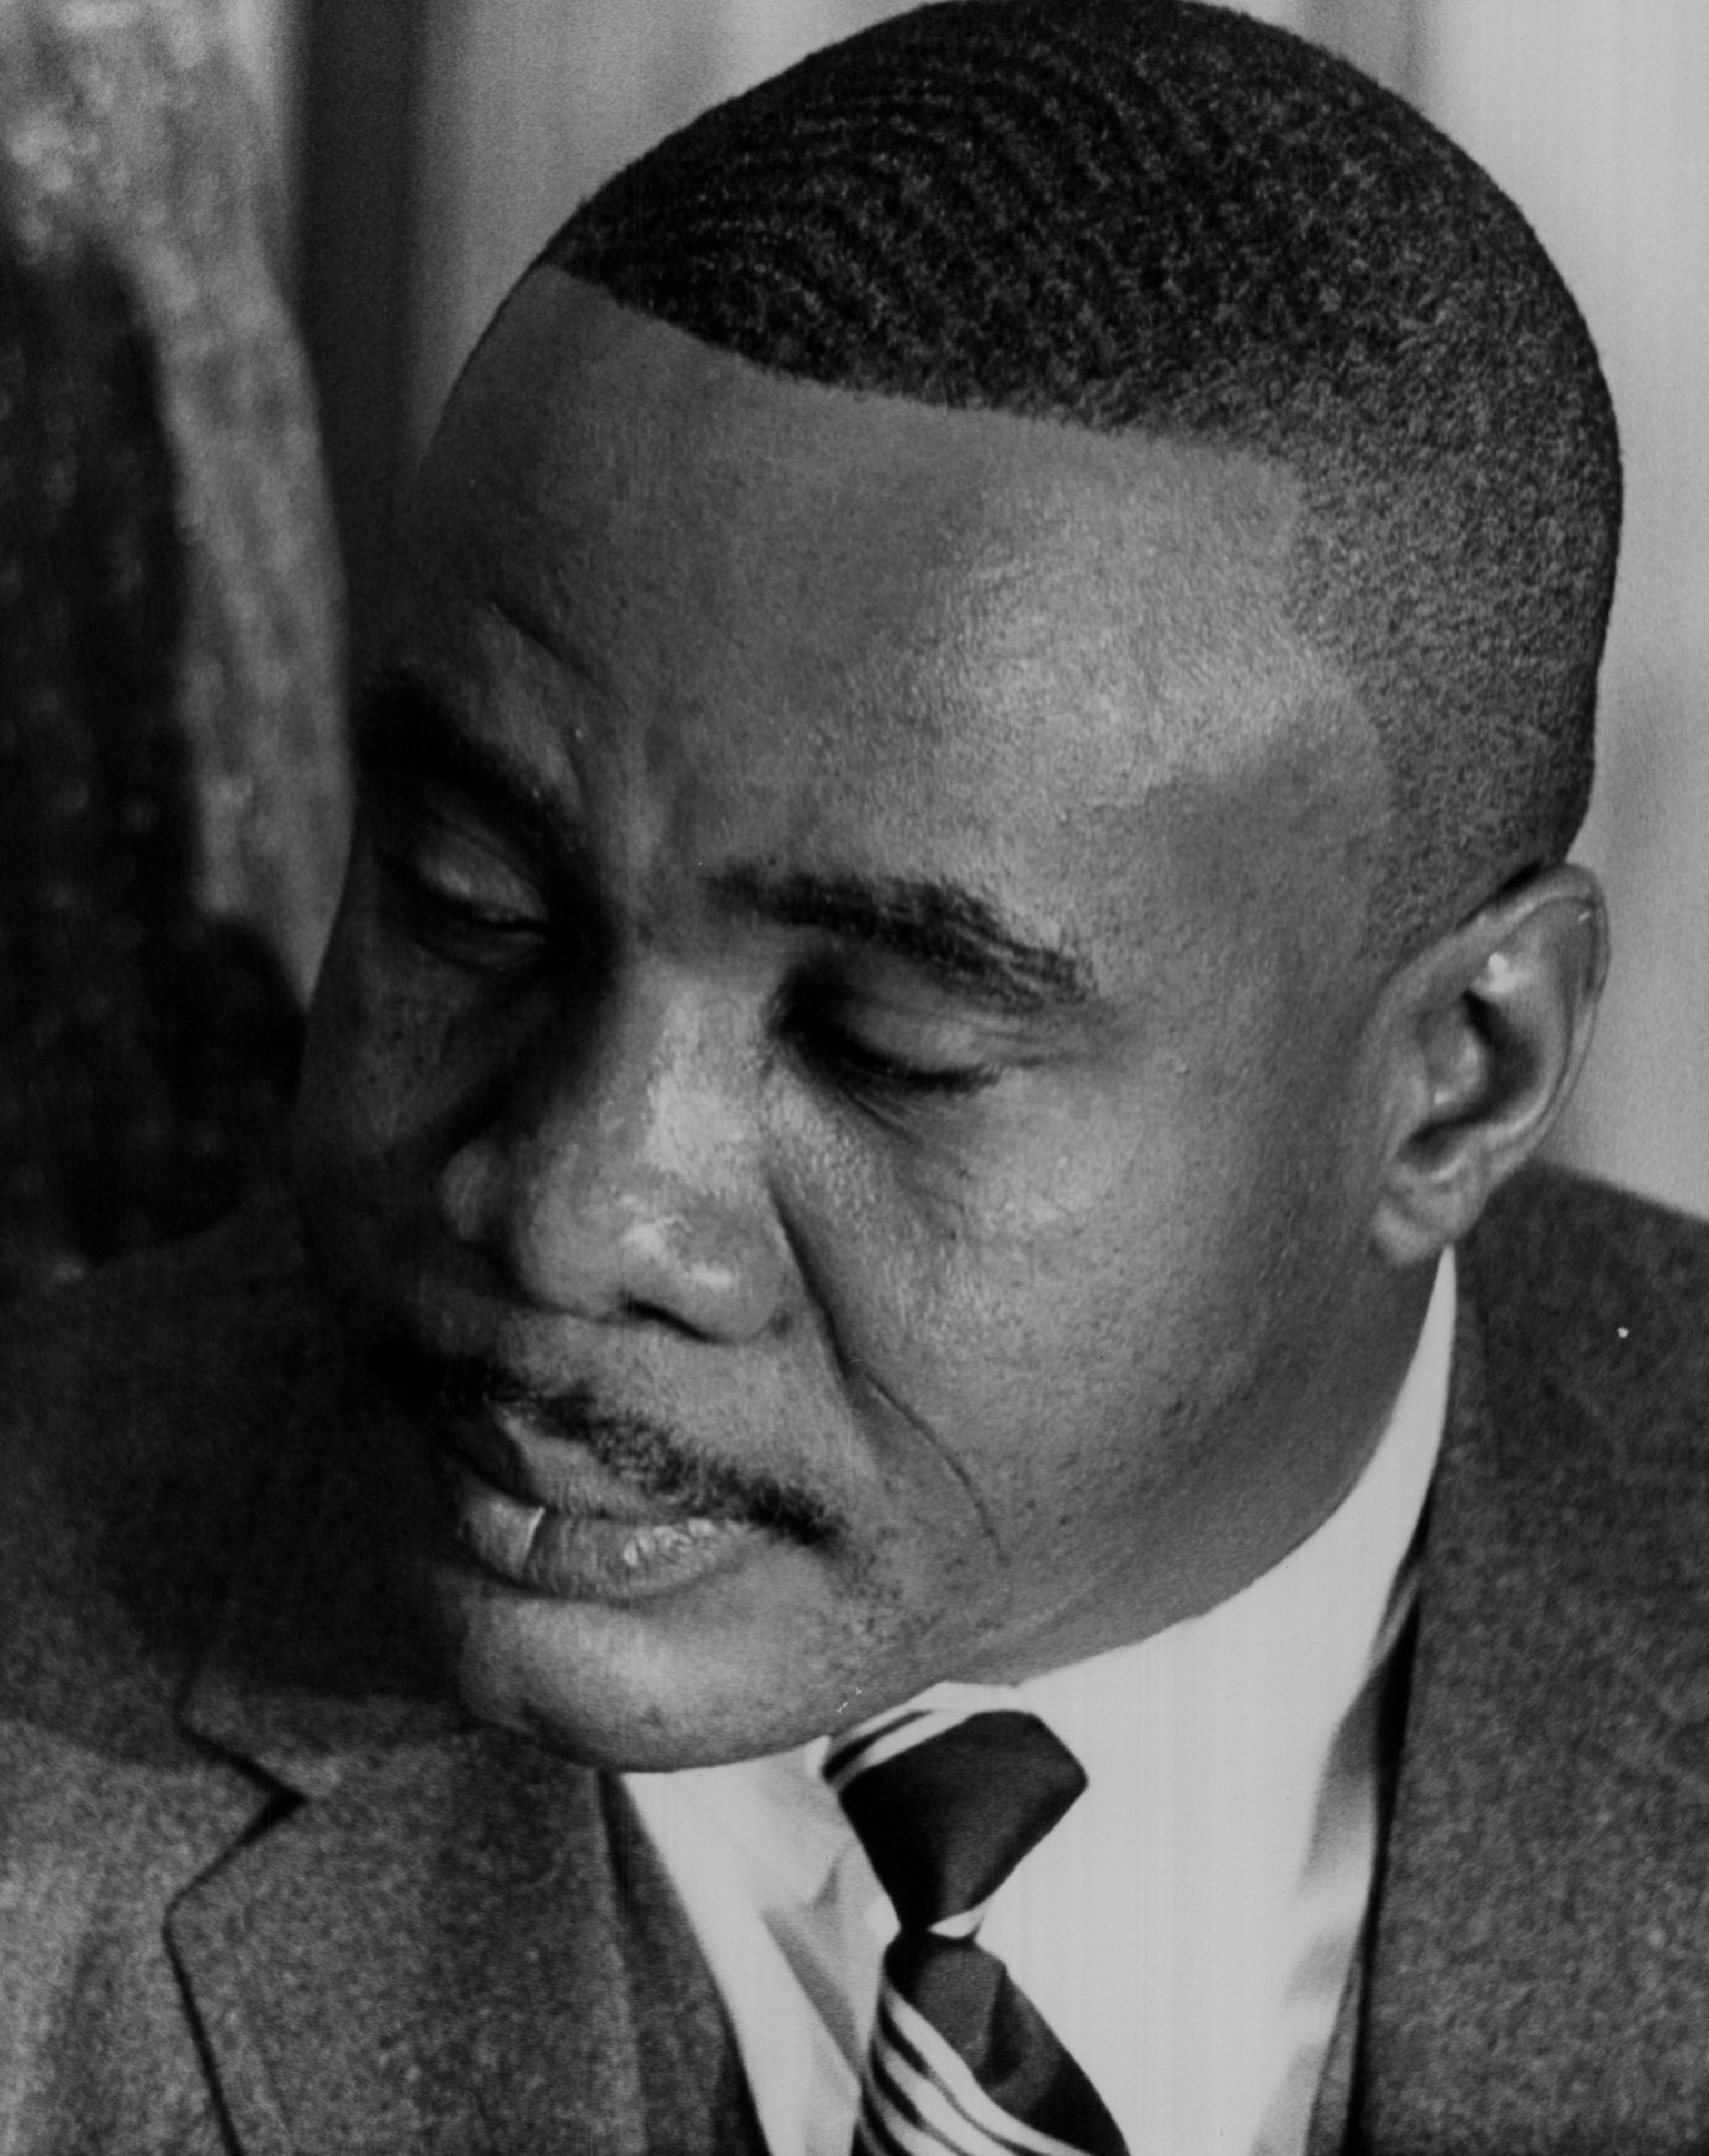 Sonny Liston in Denver, Colorado.